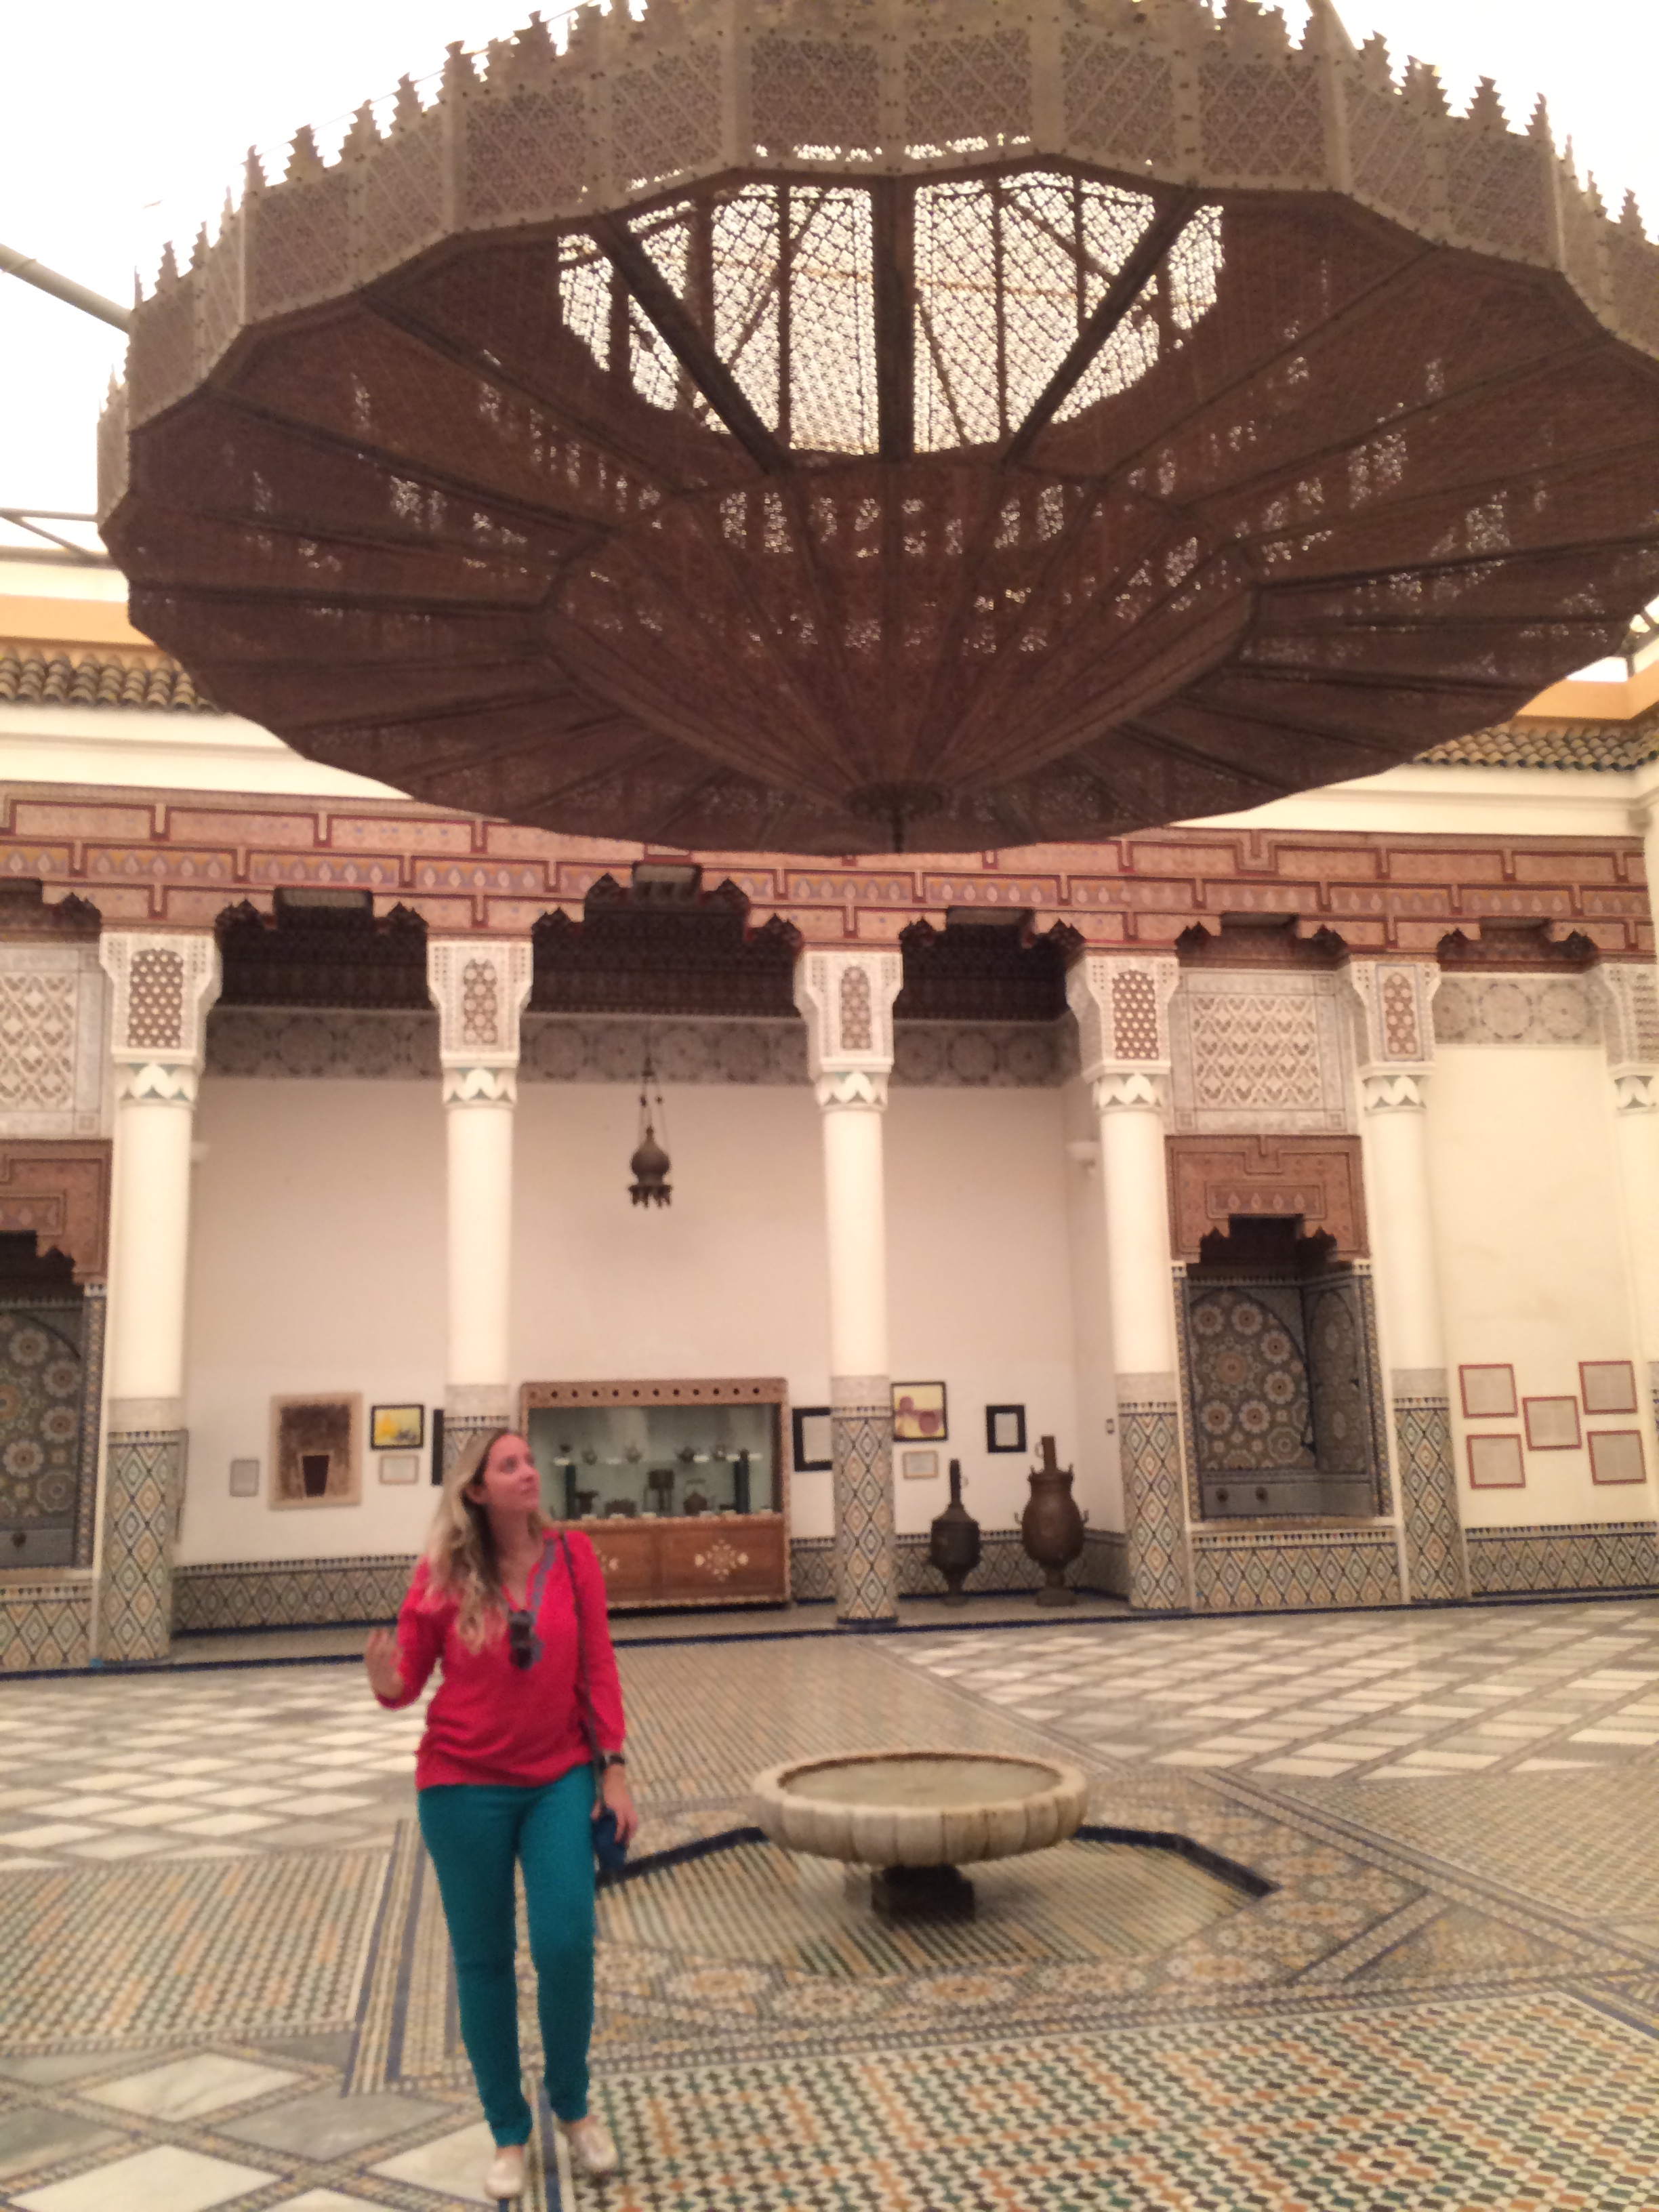 No museu de Marrakech